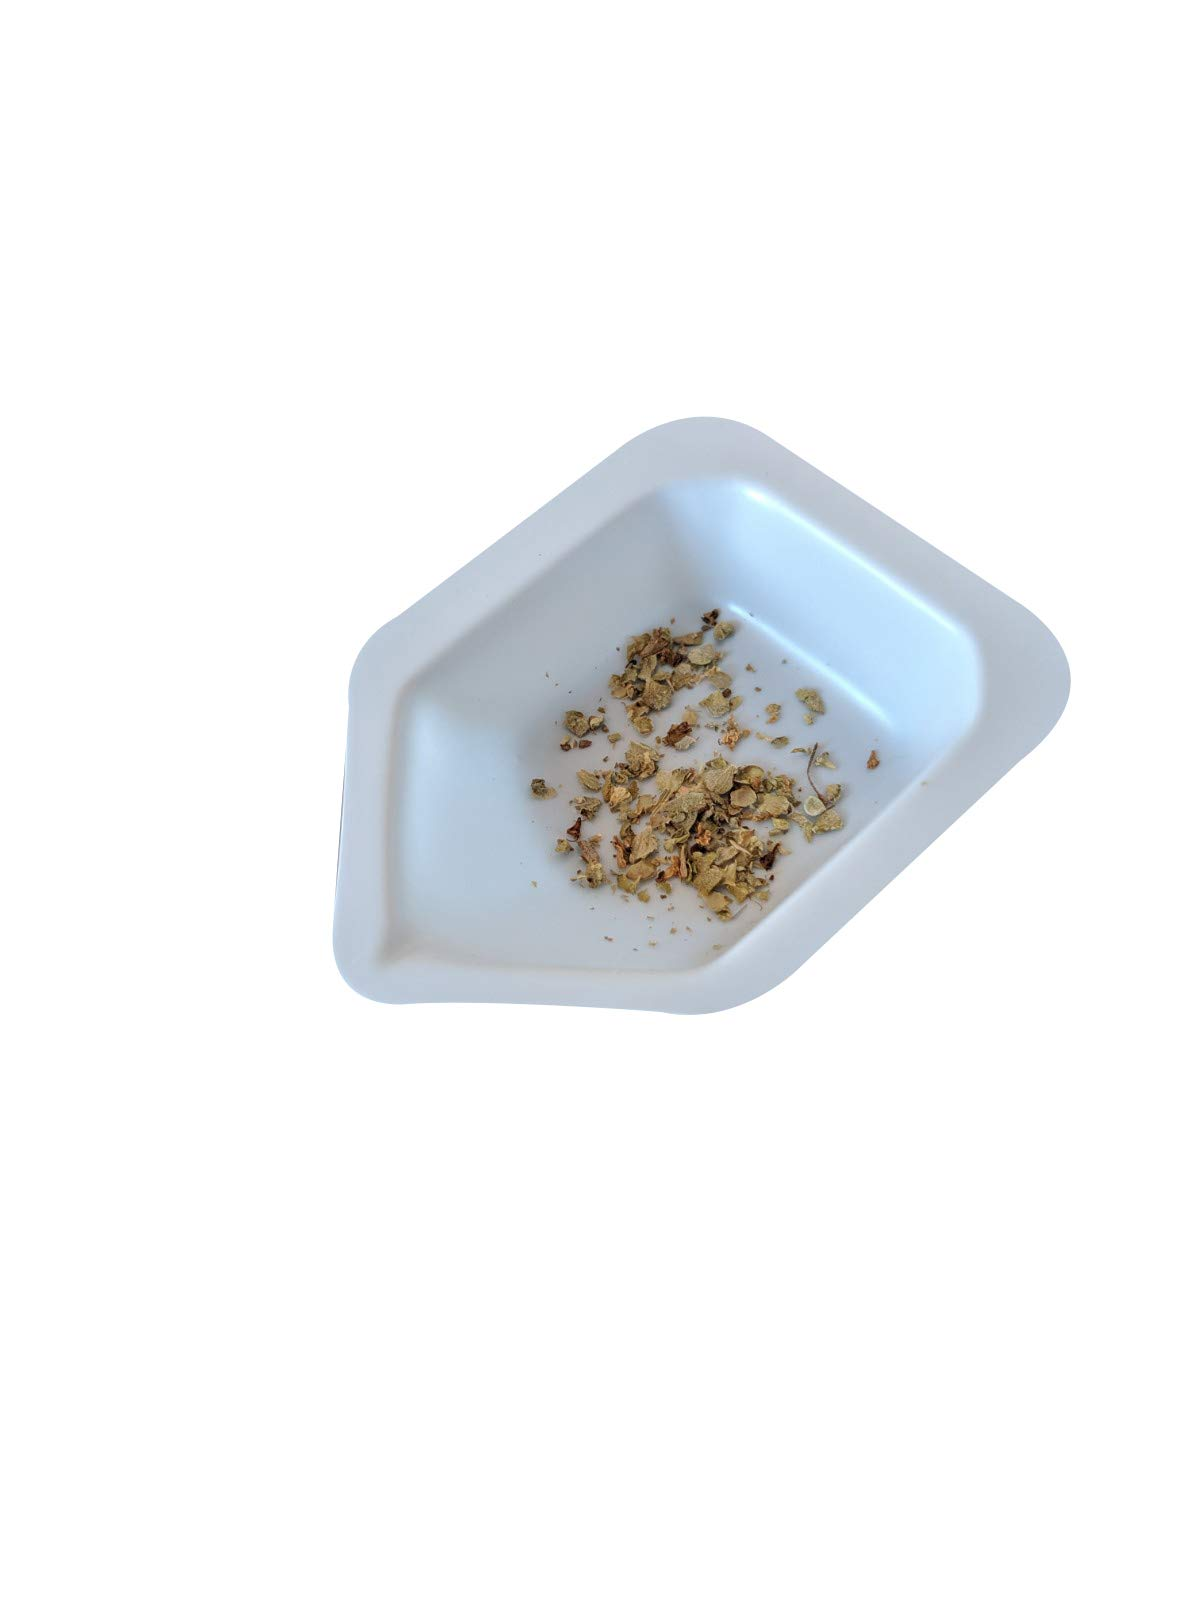 Pointed Polystyrene Weigh Canoe Boats, Mini Dish 1 3/8 in x 1 7/8 in x ½ in [Pack of 125] by Bartovation